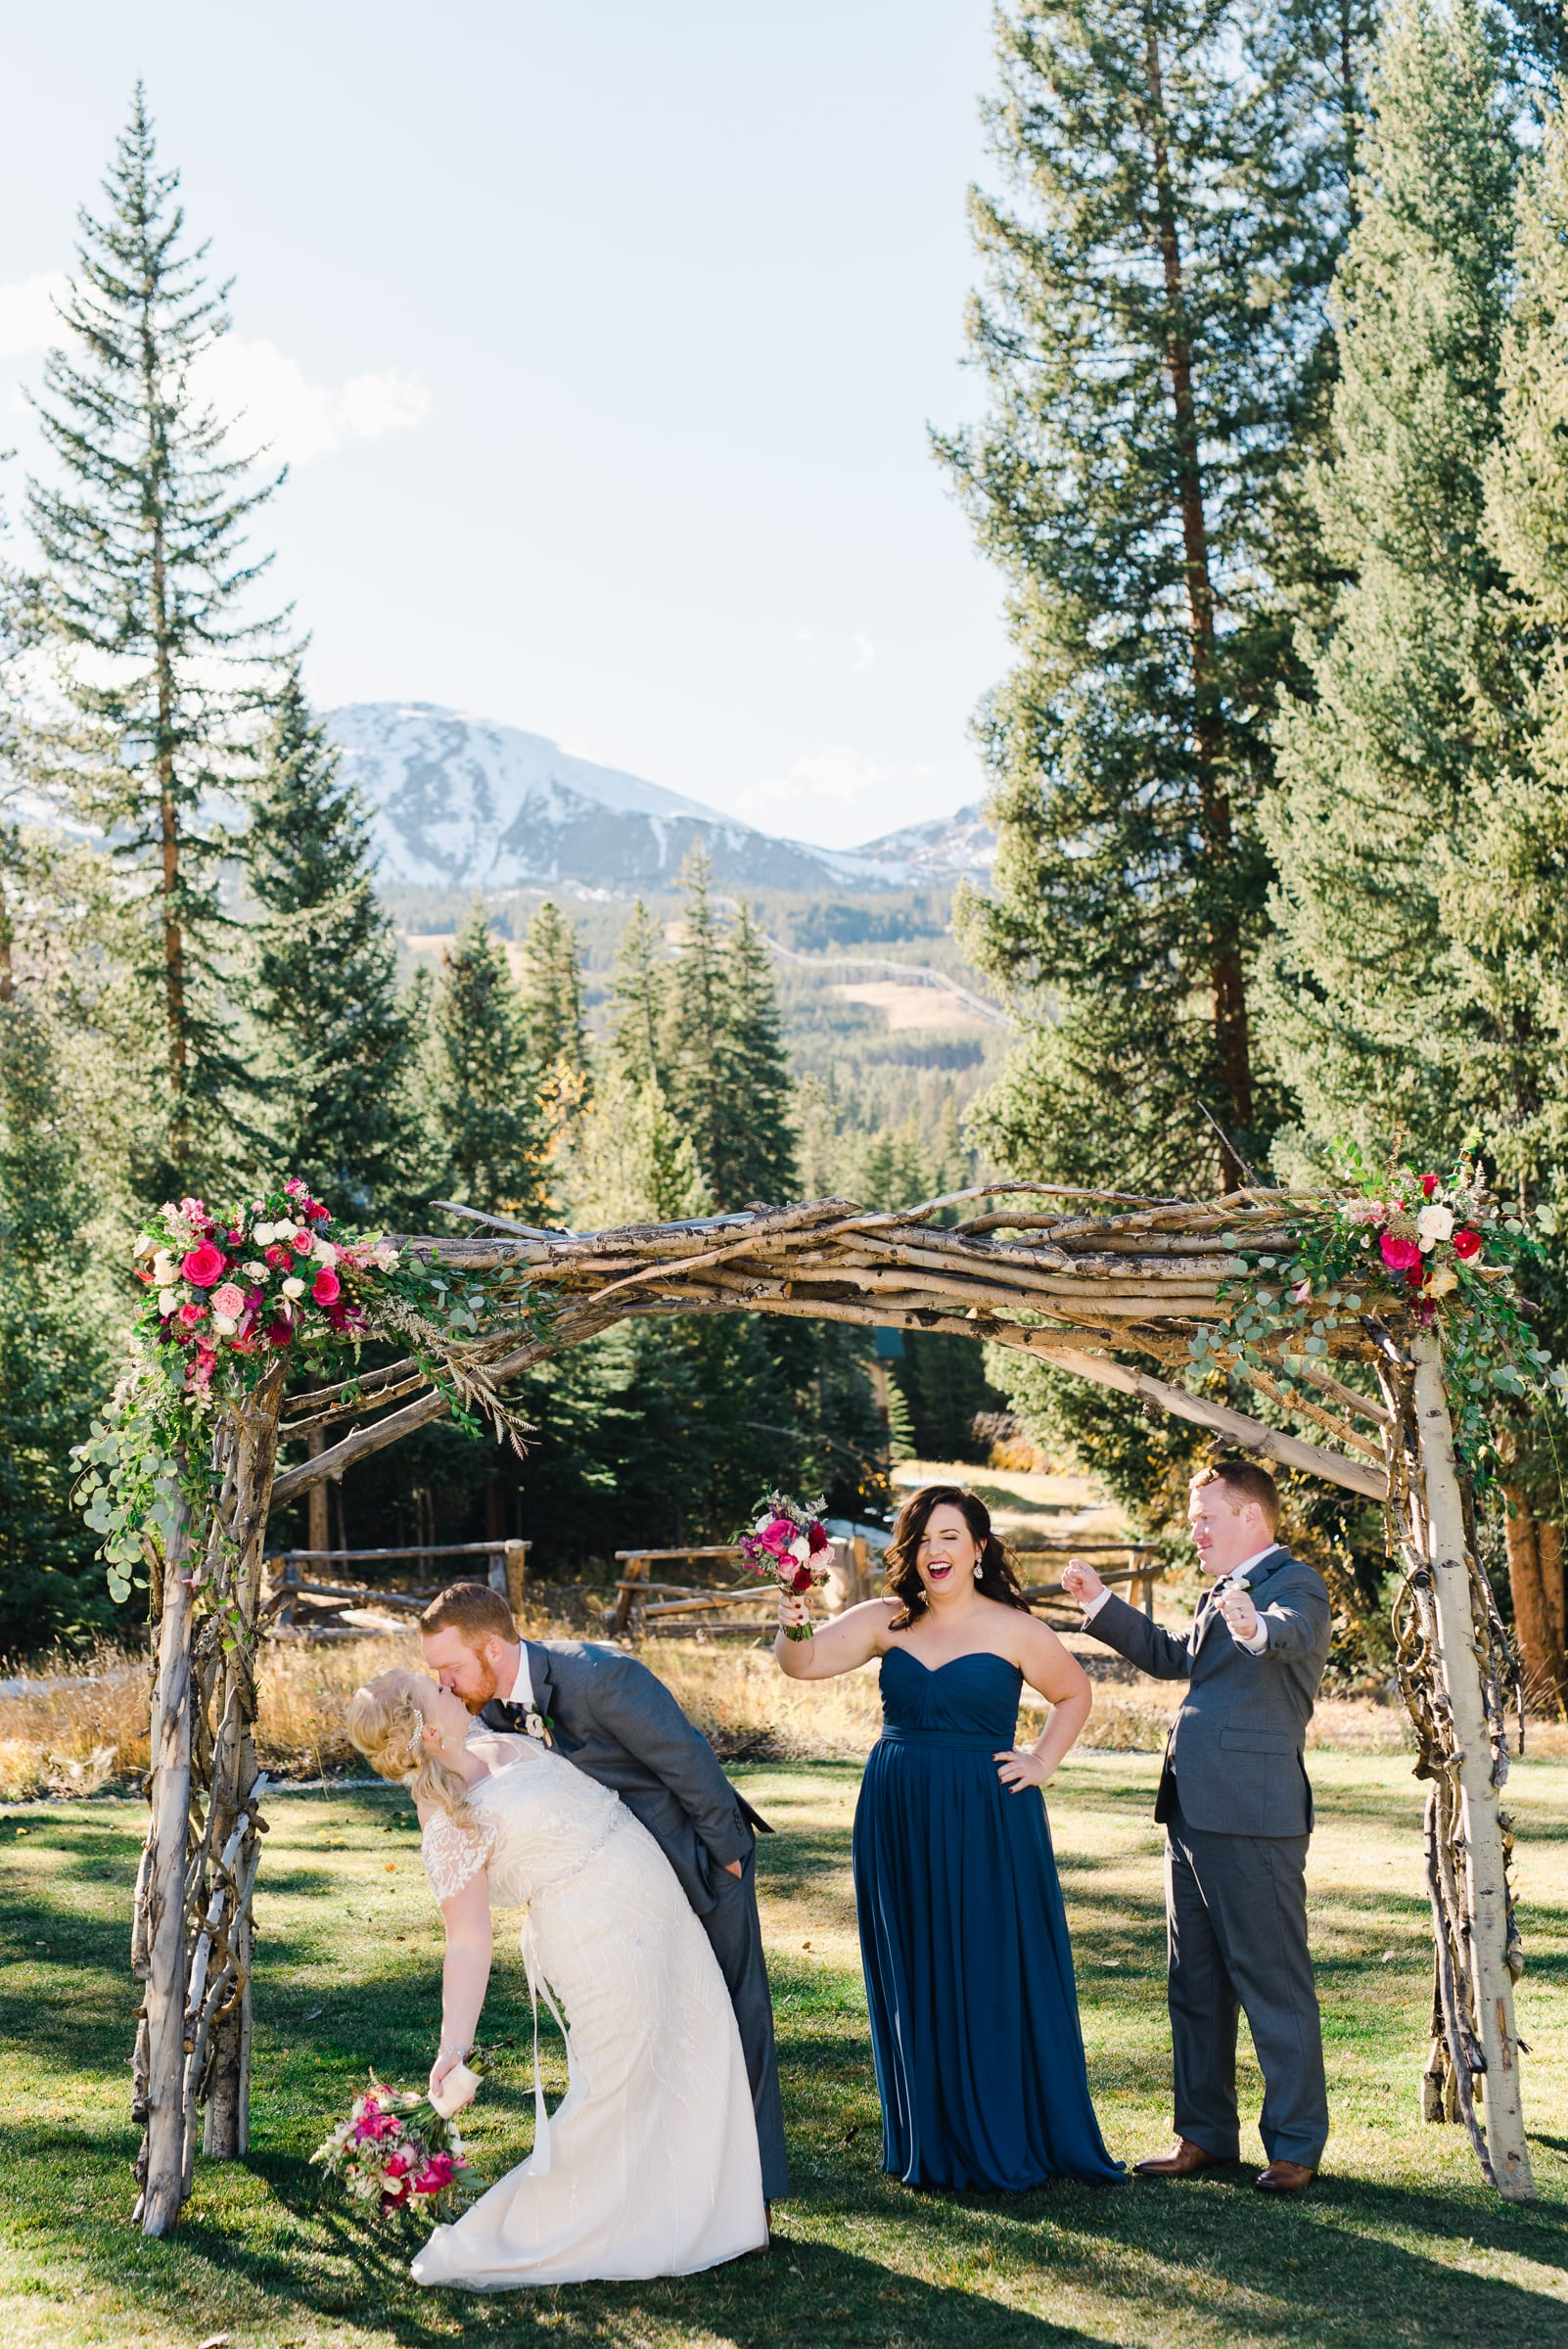 Fun Wedding Party Photos | Josie V Photography